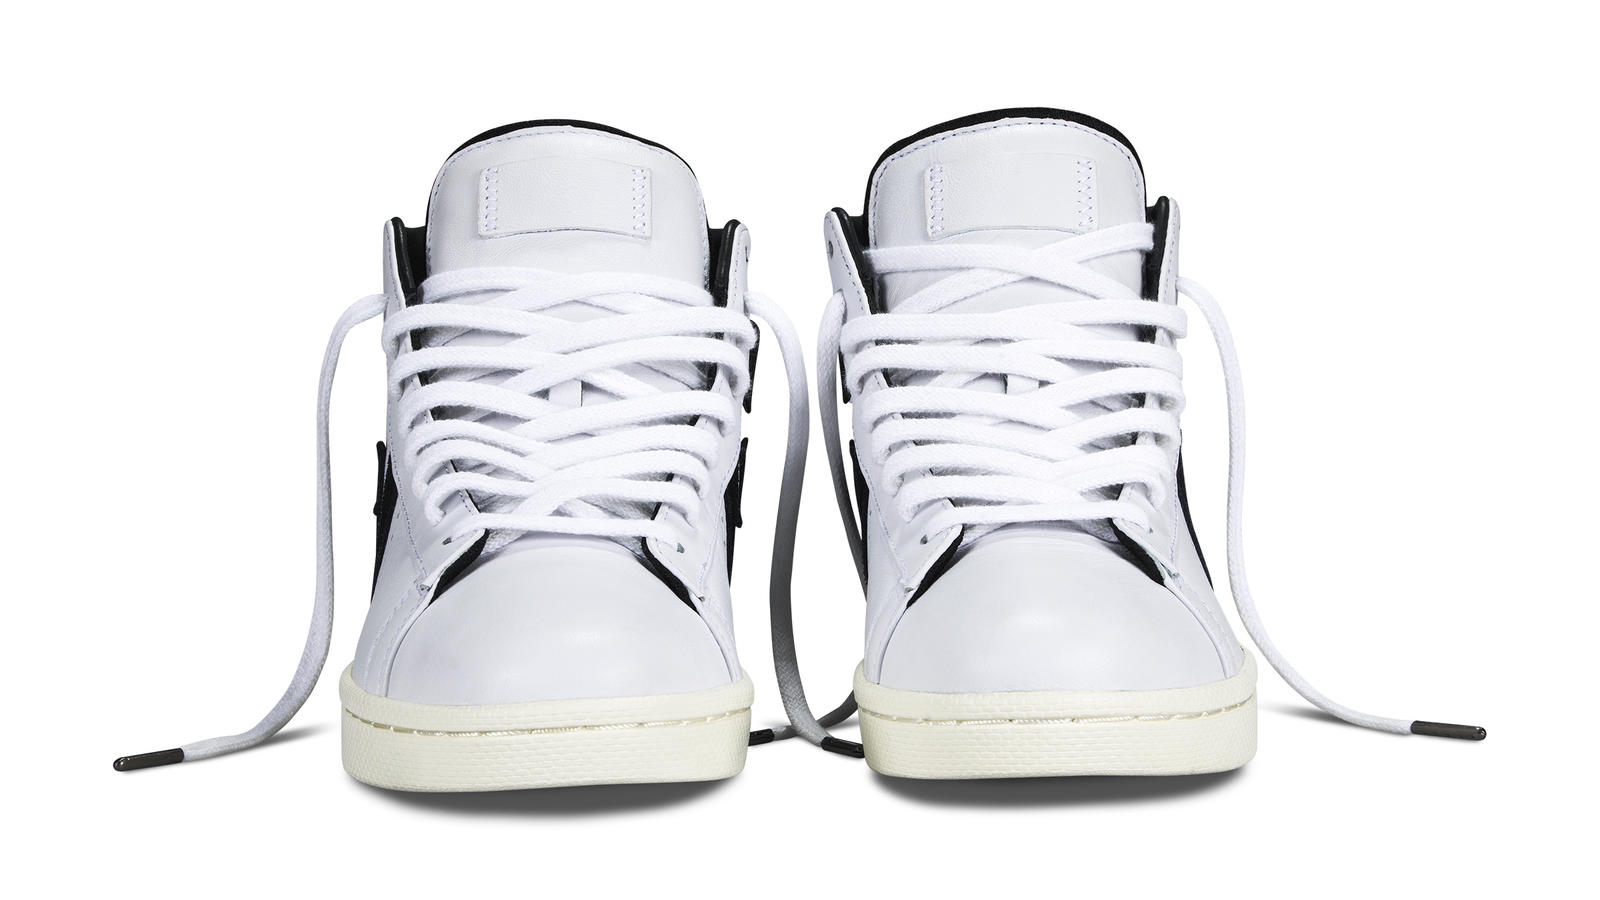 c77691e97194 Converse CONS Debuts Limited Edition Footwear Collection With Trash ...